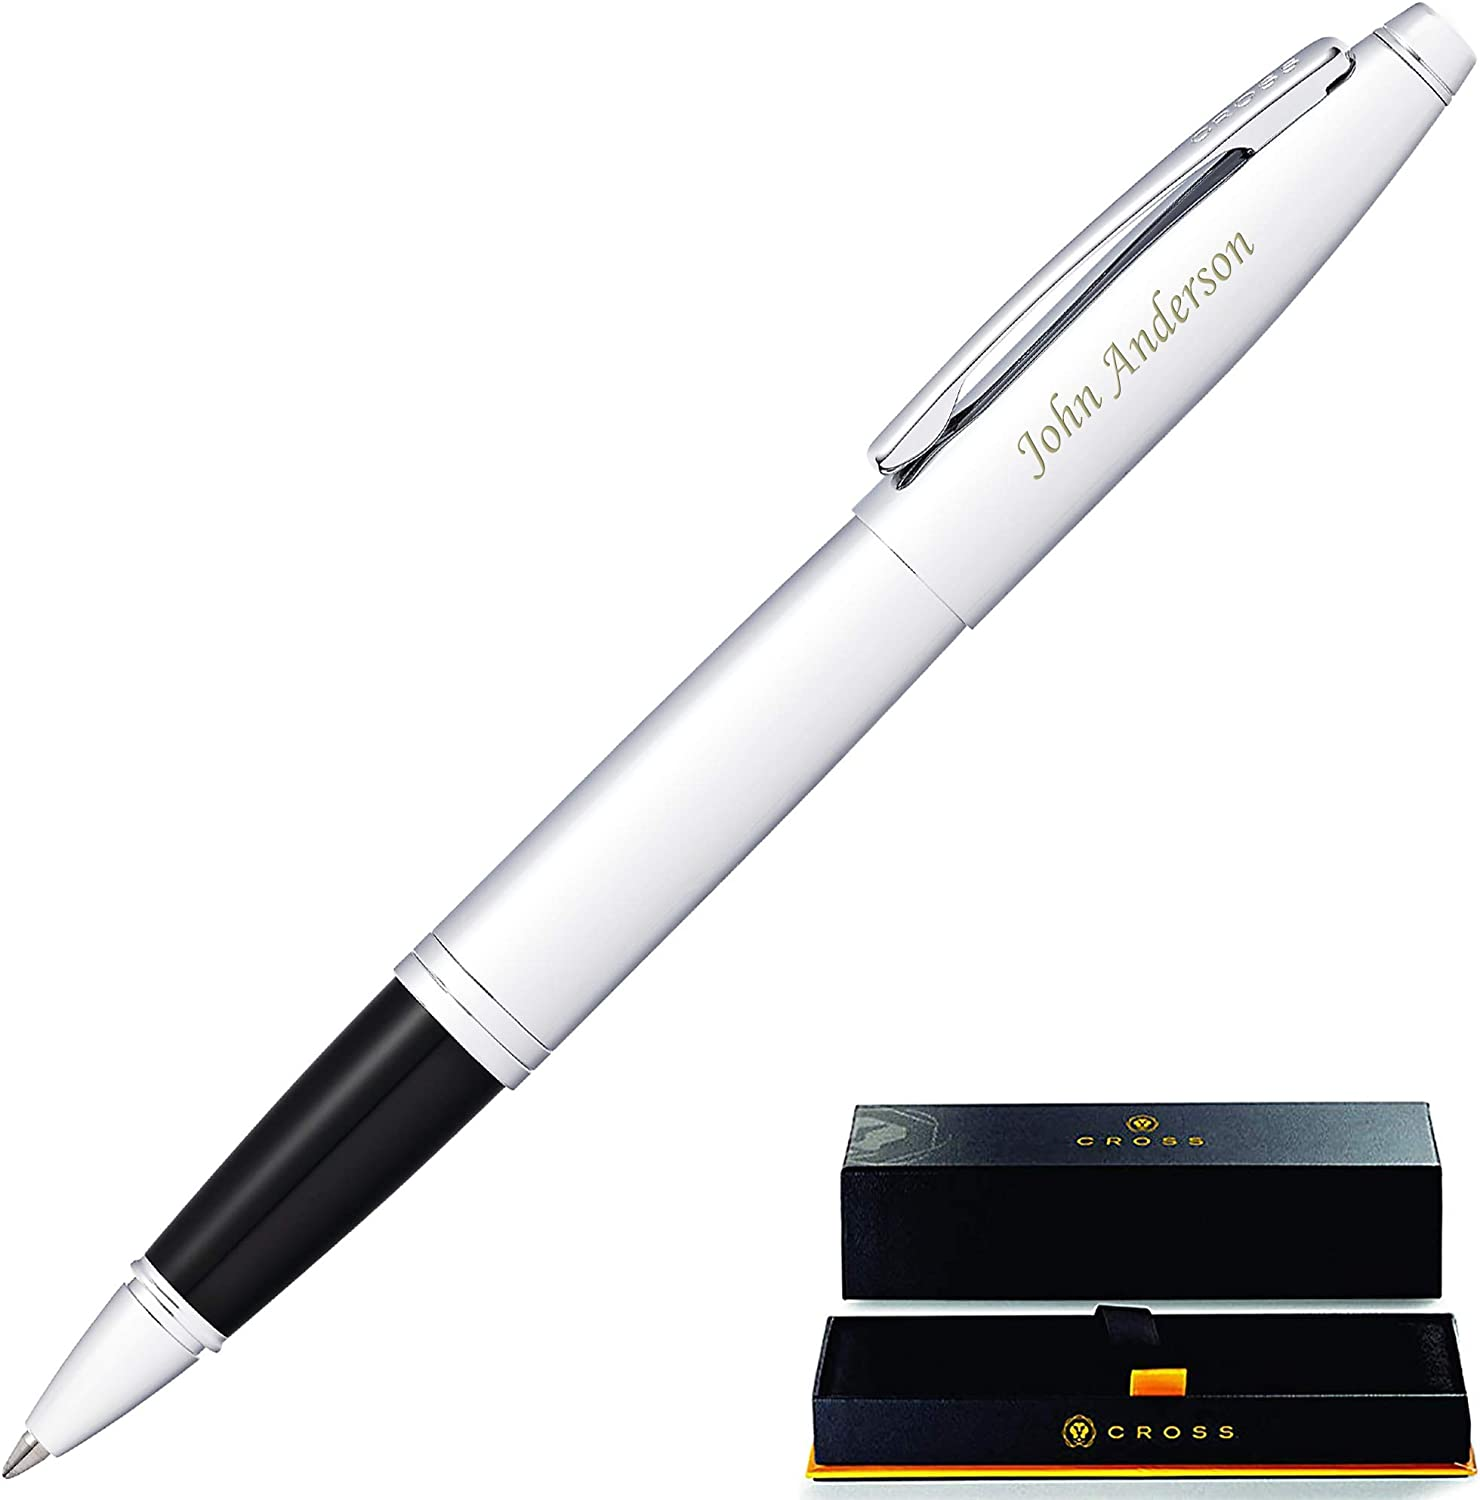 Custom Engraving AT0115-3 Engraved//Personalized Cross Calais Chrome//Blue Lacquer Selectip Rollerball Pen with Gift Box